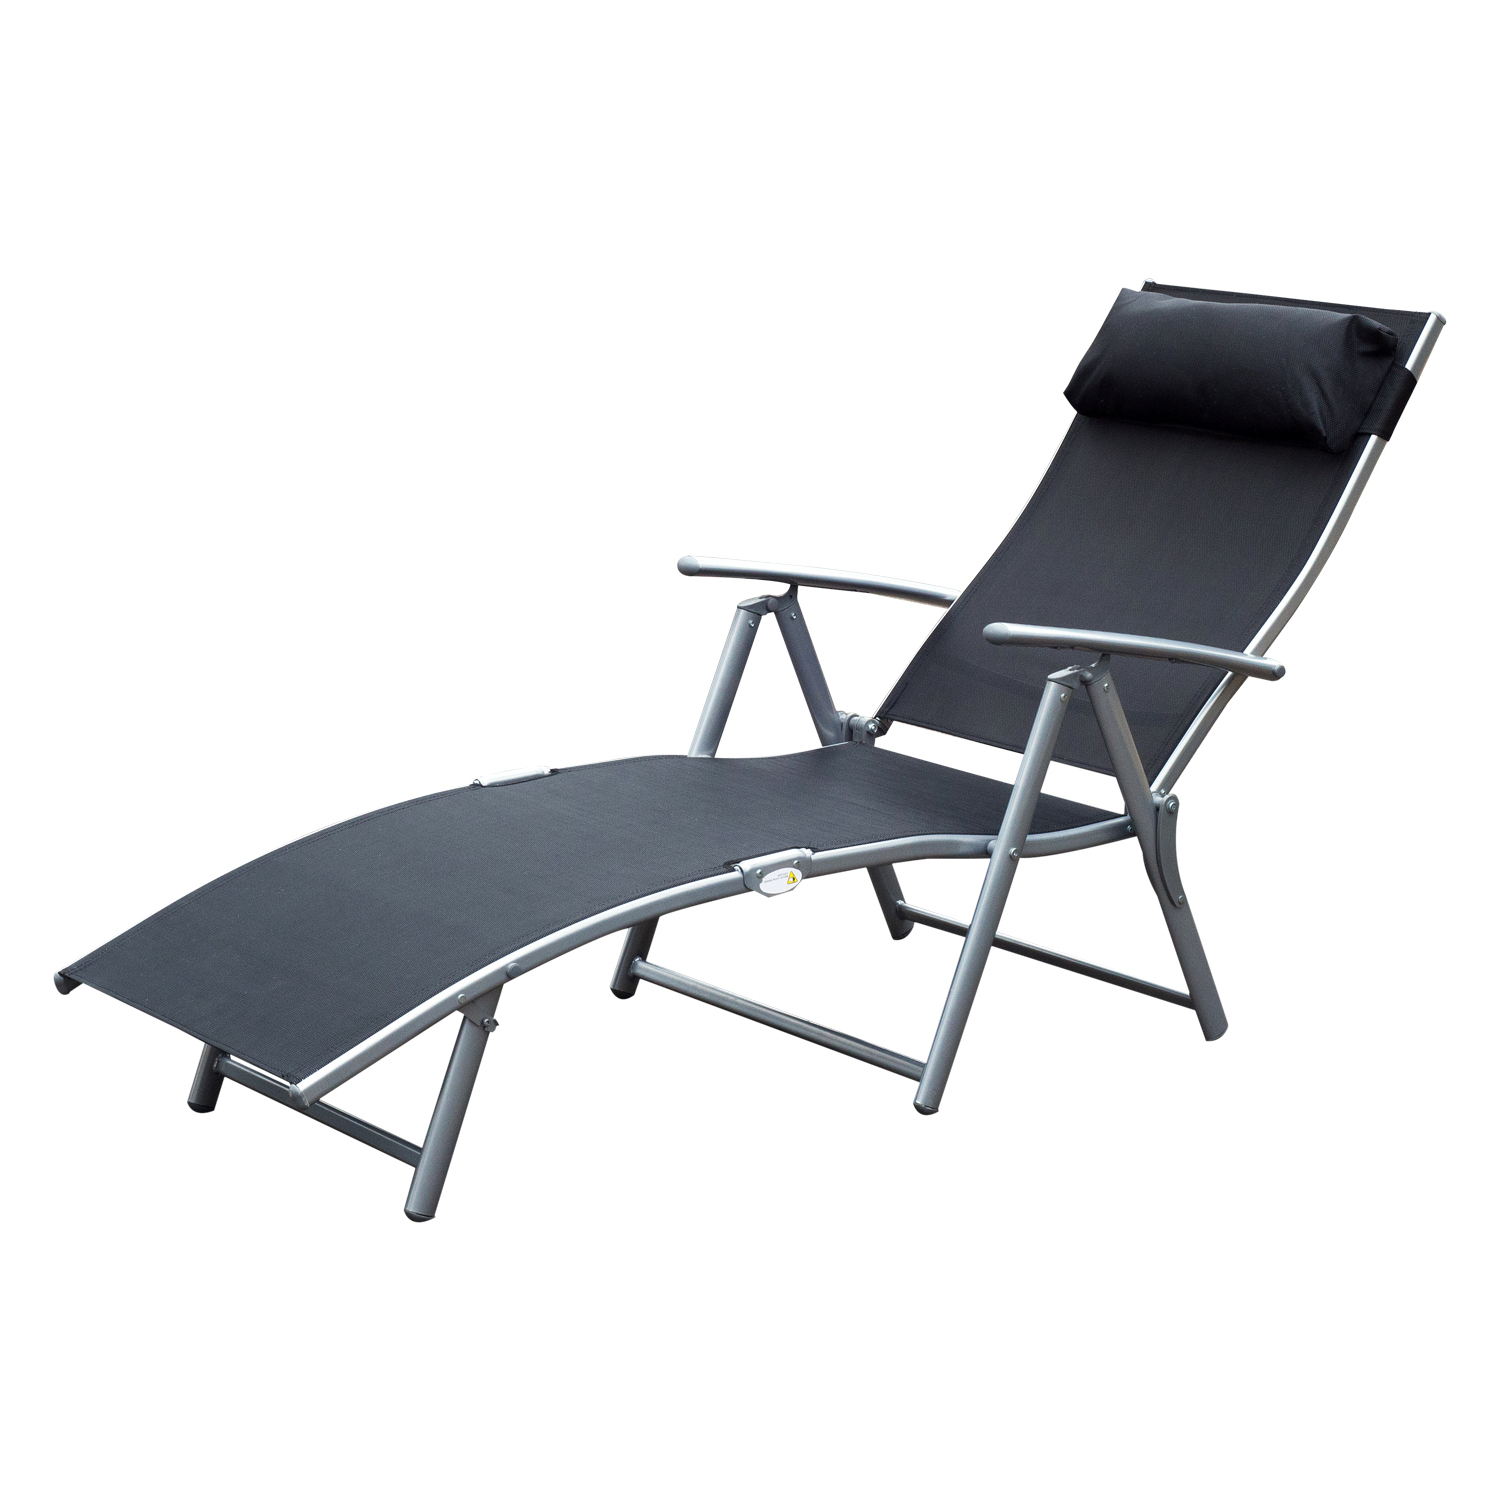 Well Known Reclining Sling Lounge Chairs Throughout Outsunny Sling Fabric Patio Reclining Chaise Lounge Chair Folding 5  Position Adjustable Outdoor Deck With Cushion – Black – Walmart (Gallery 3 of 25)